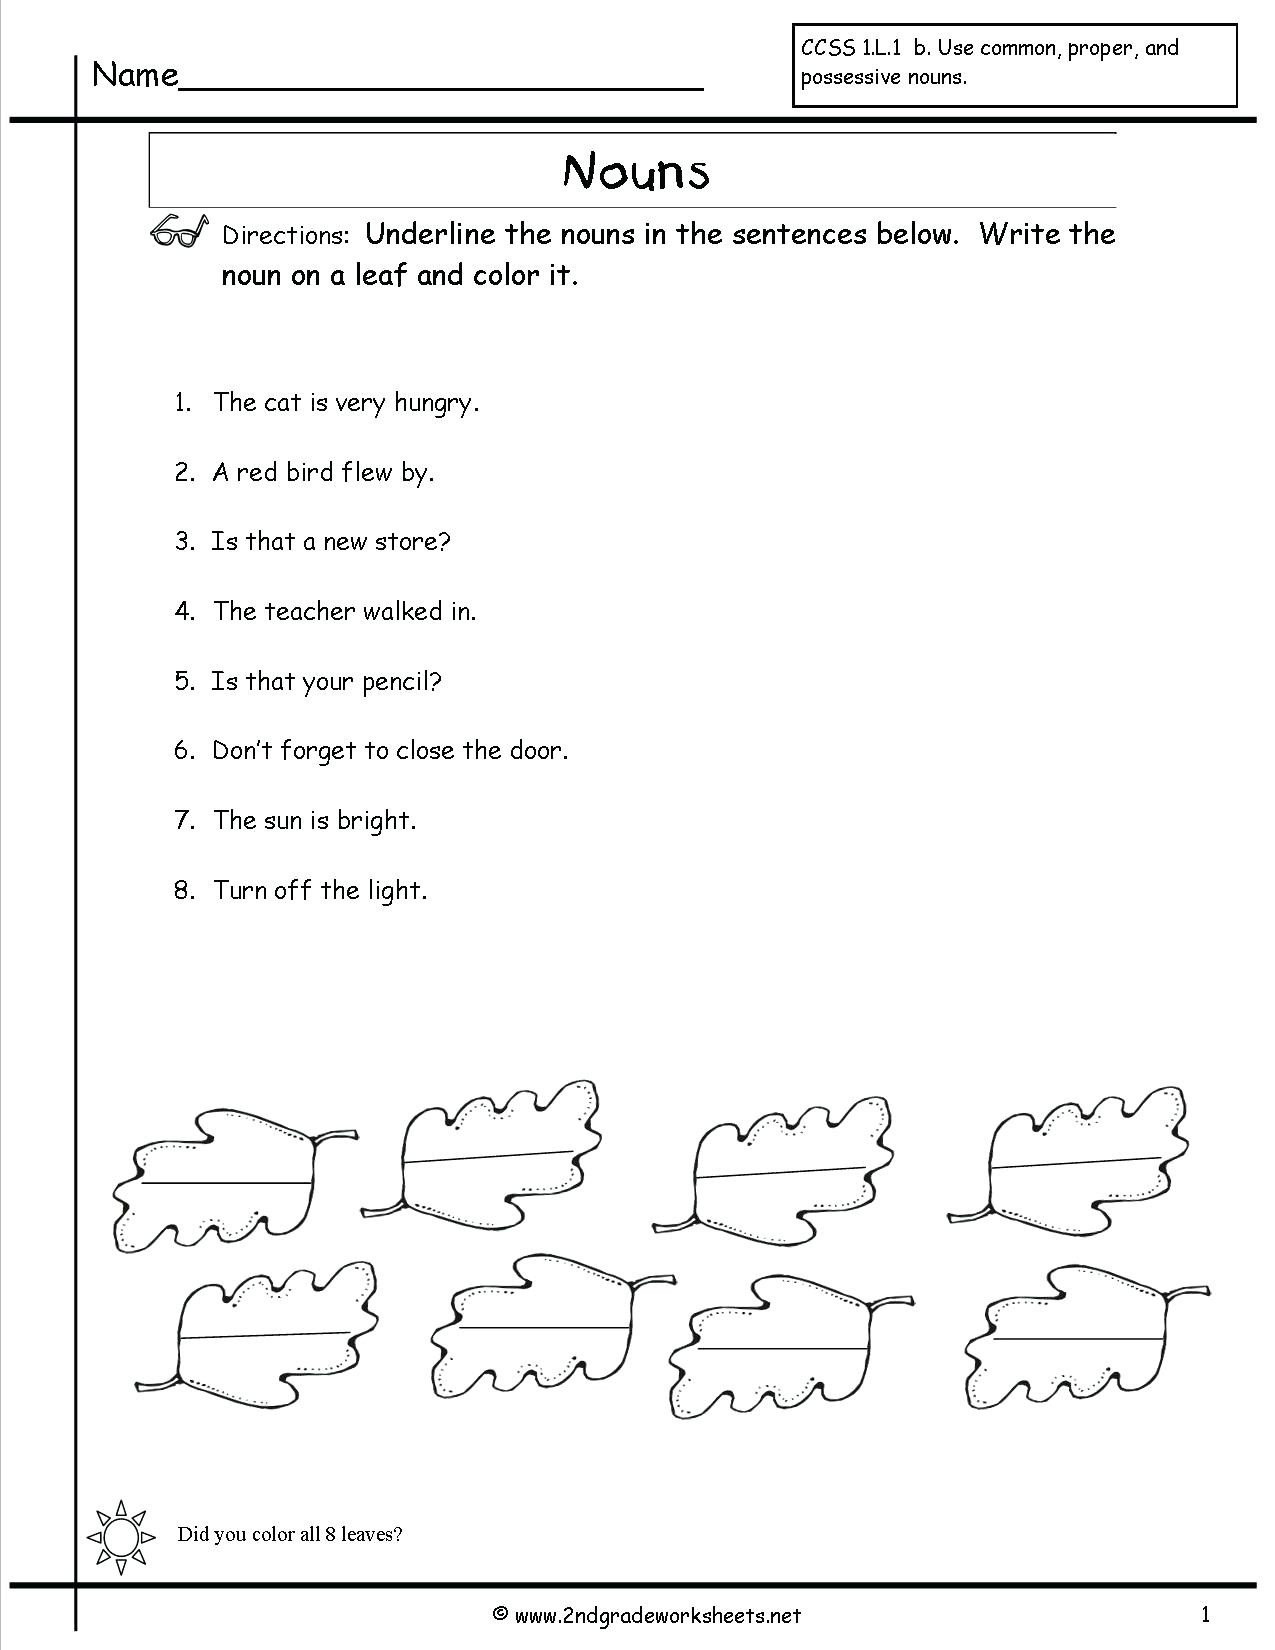 Possessive Pronouns Worksheet 5th Grade Nouns and Pronouns Worksheets Pronoun Worksheet 3 Relative